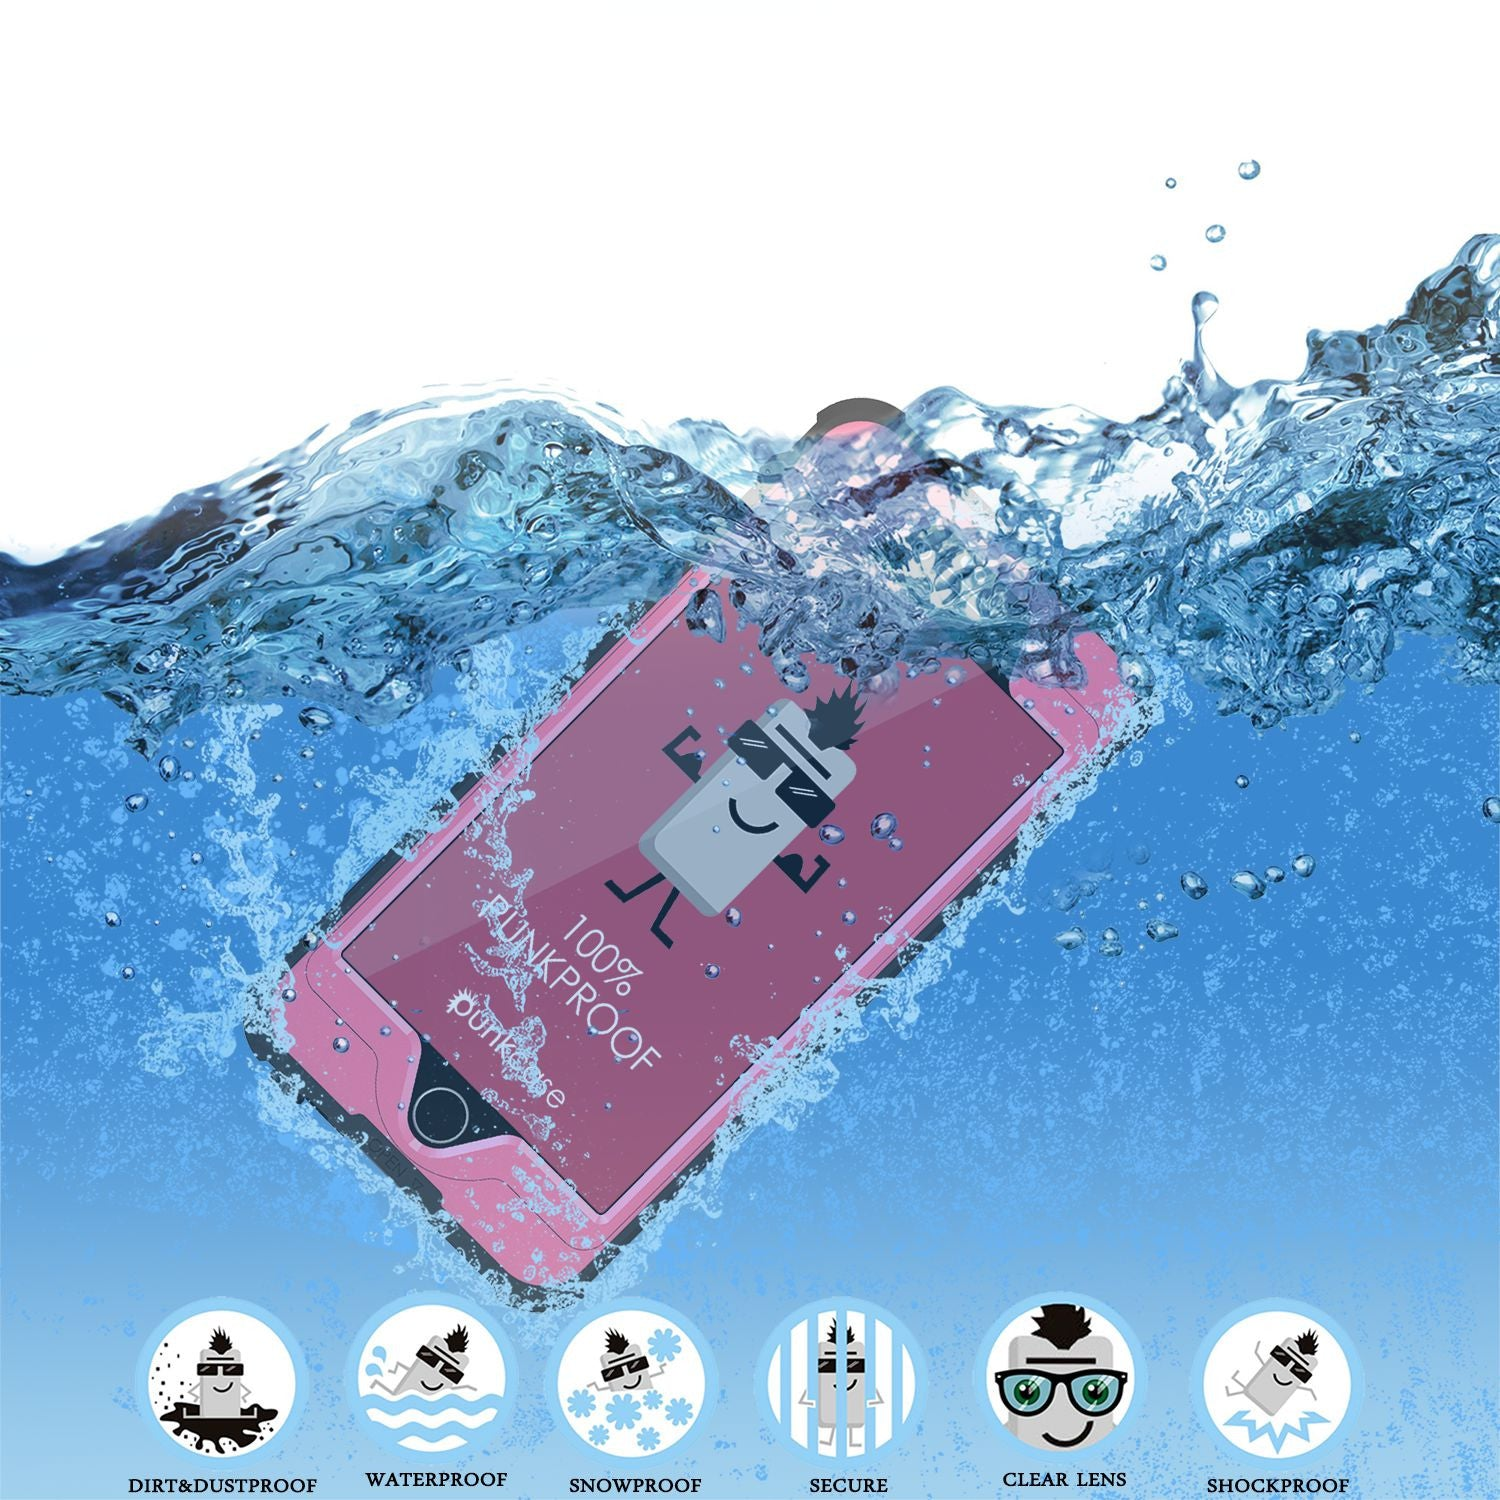 iPhone 6s/6 Waterproof Case, PunkCase StudStar Pink w/ Attached Screen Protector | Lifetime Warranty